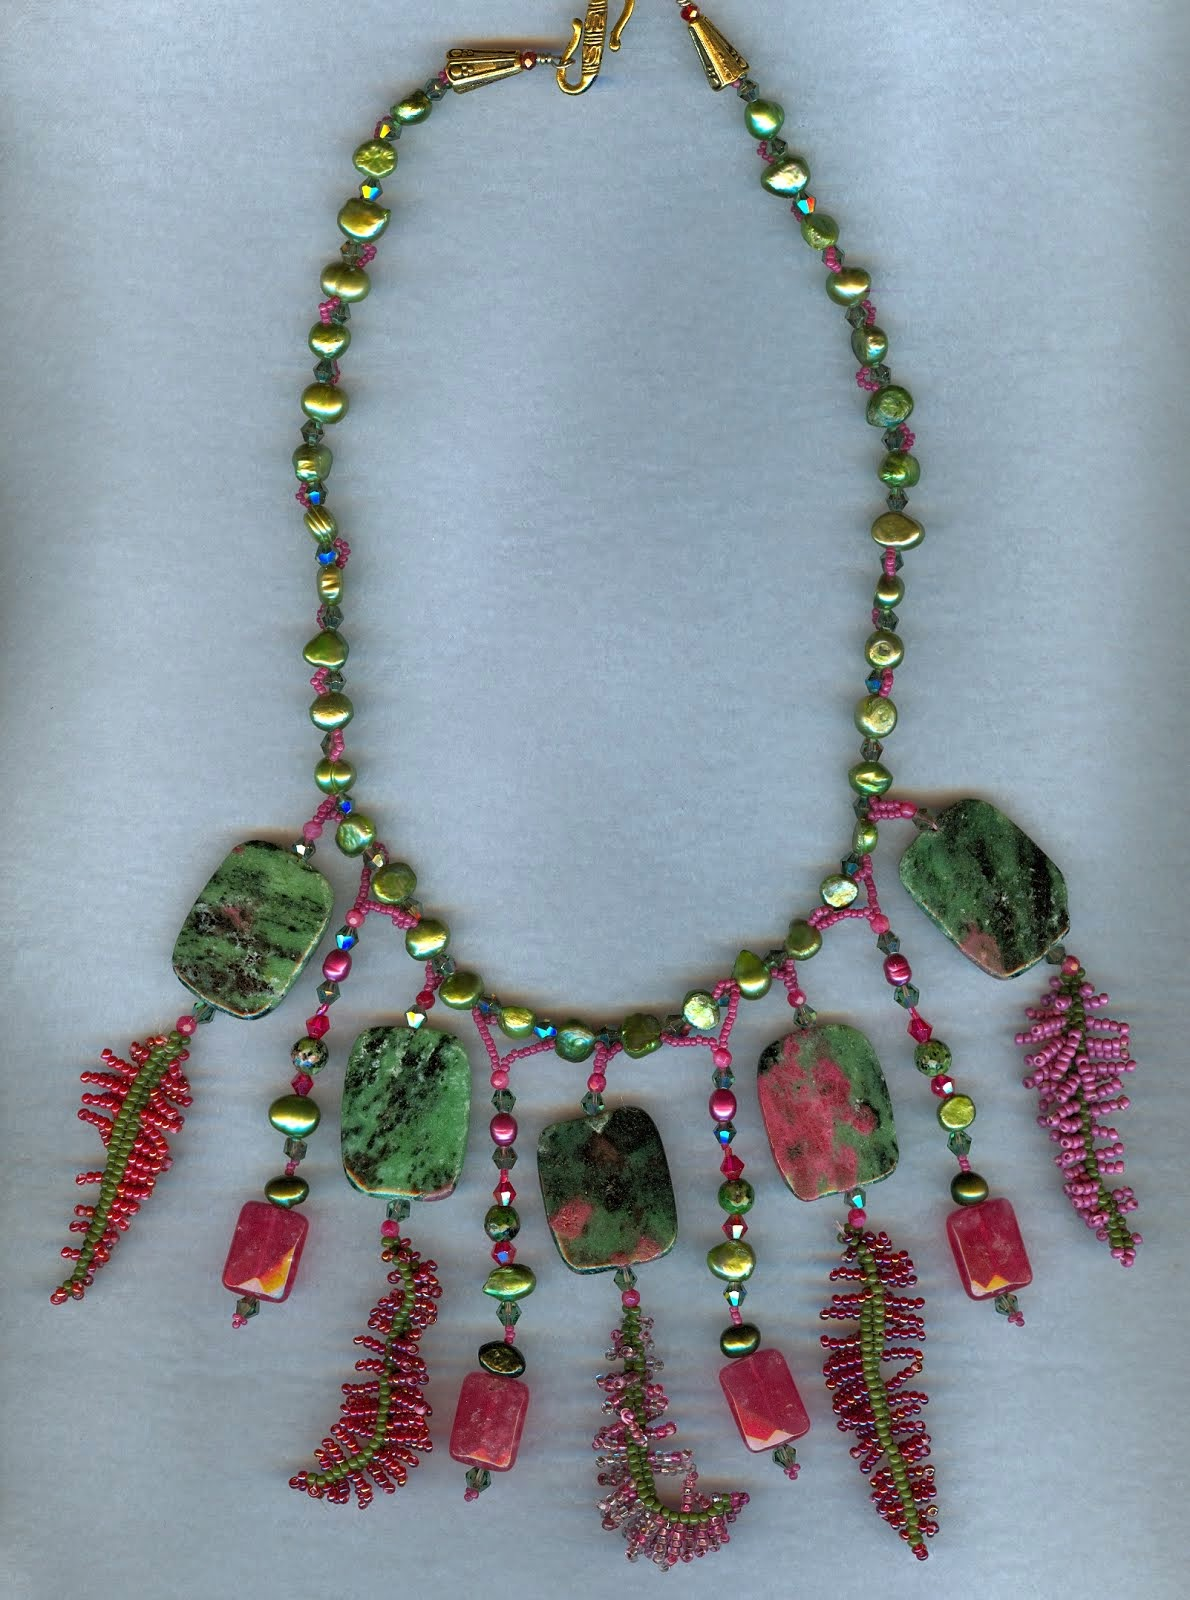 red green ferns and green gem stones